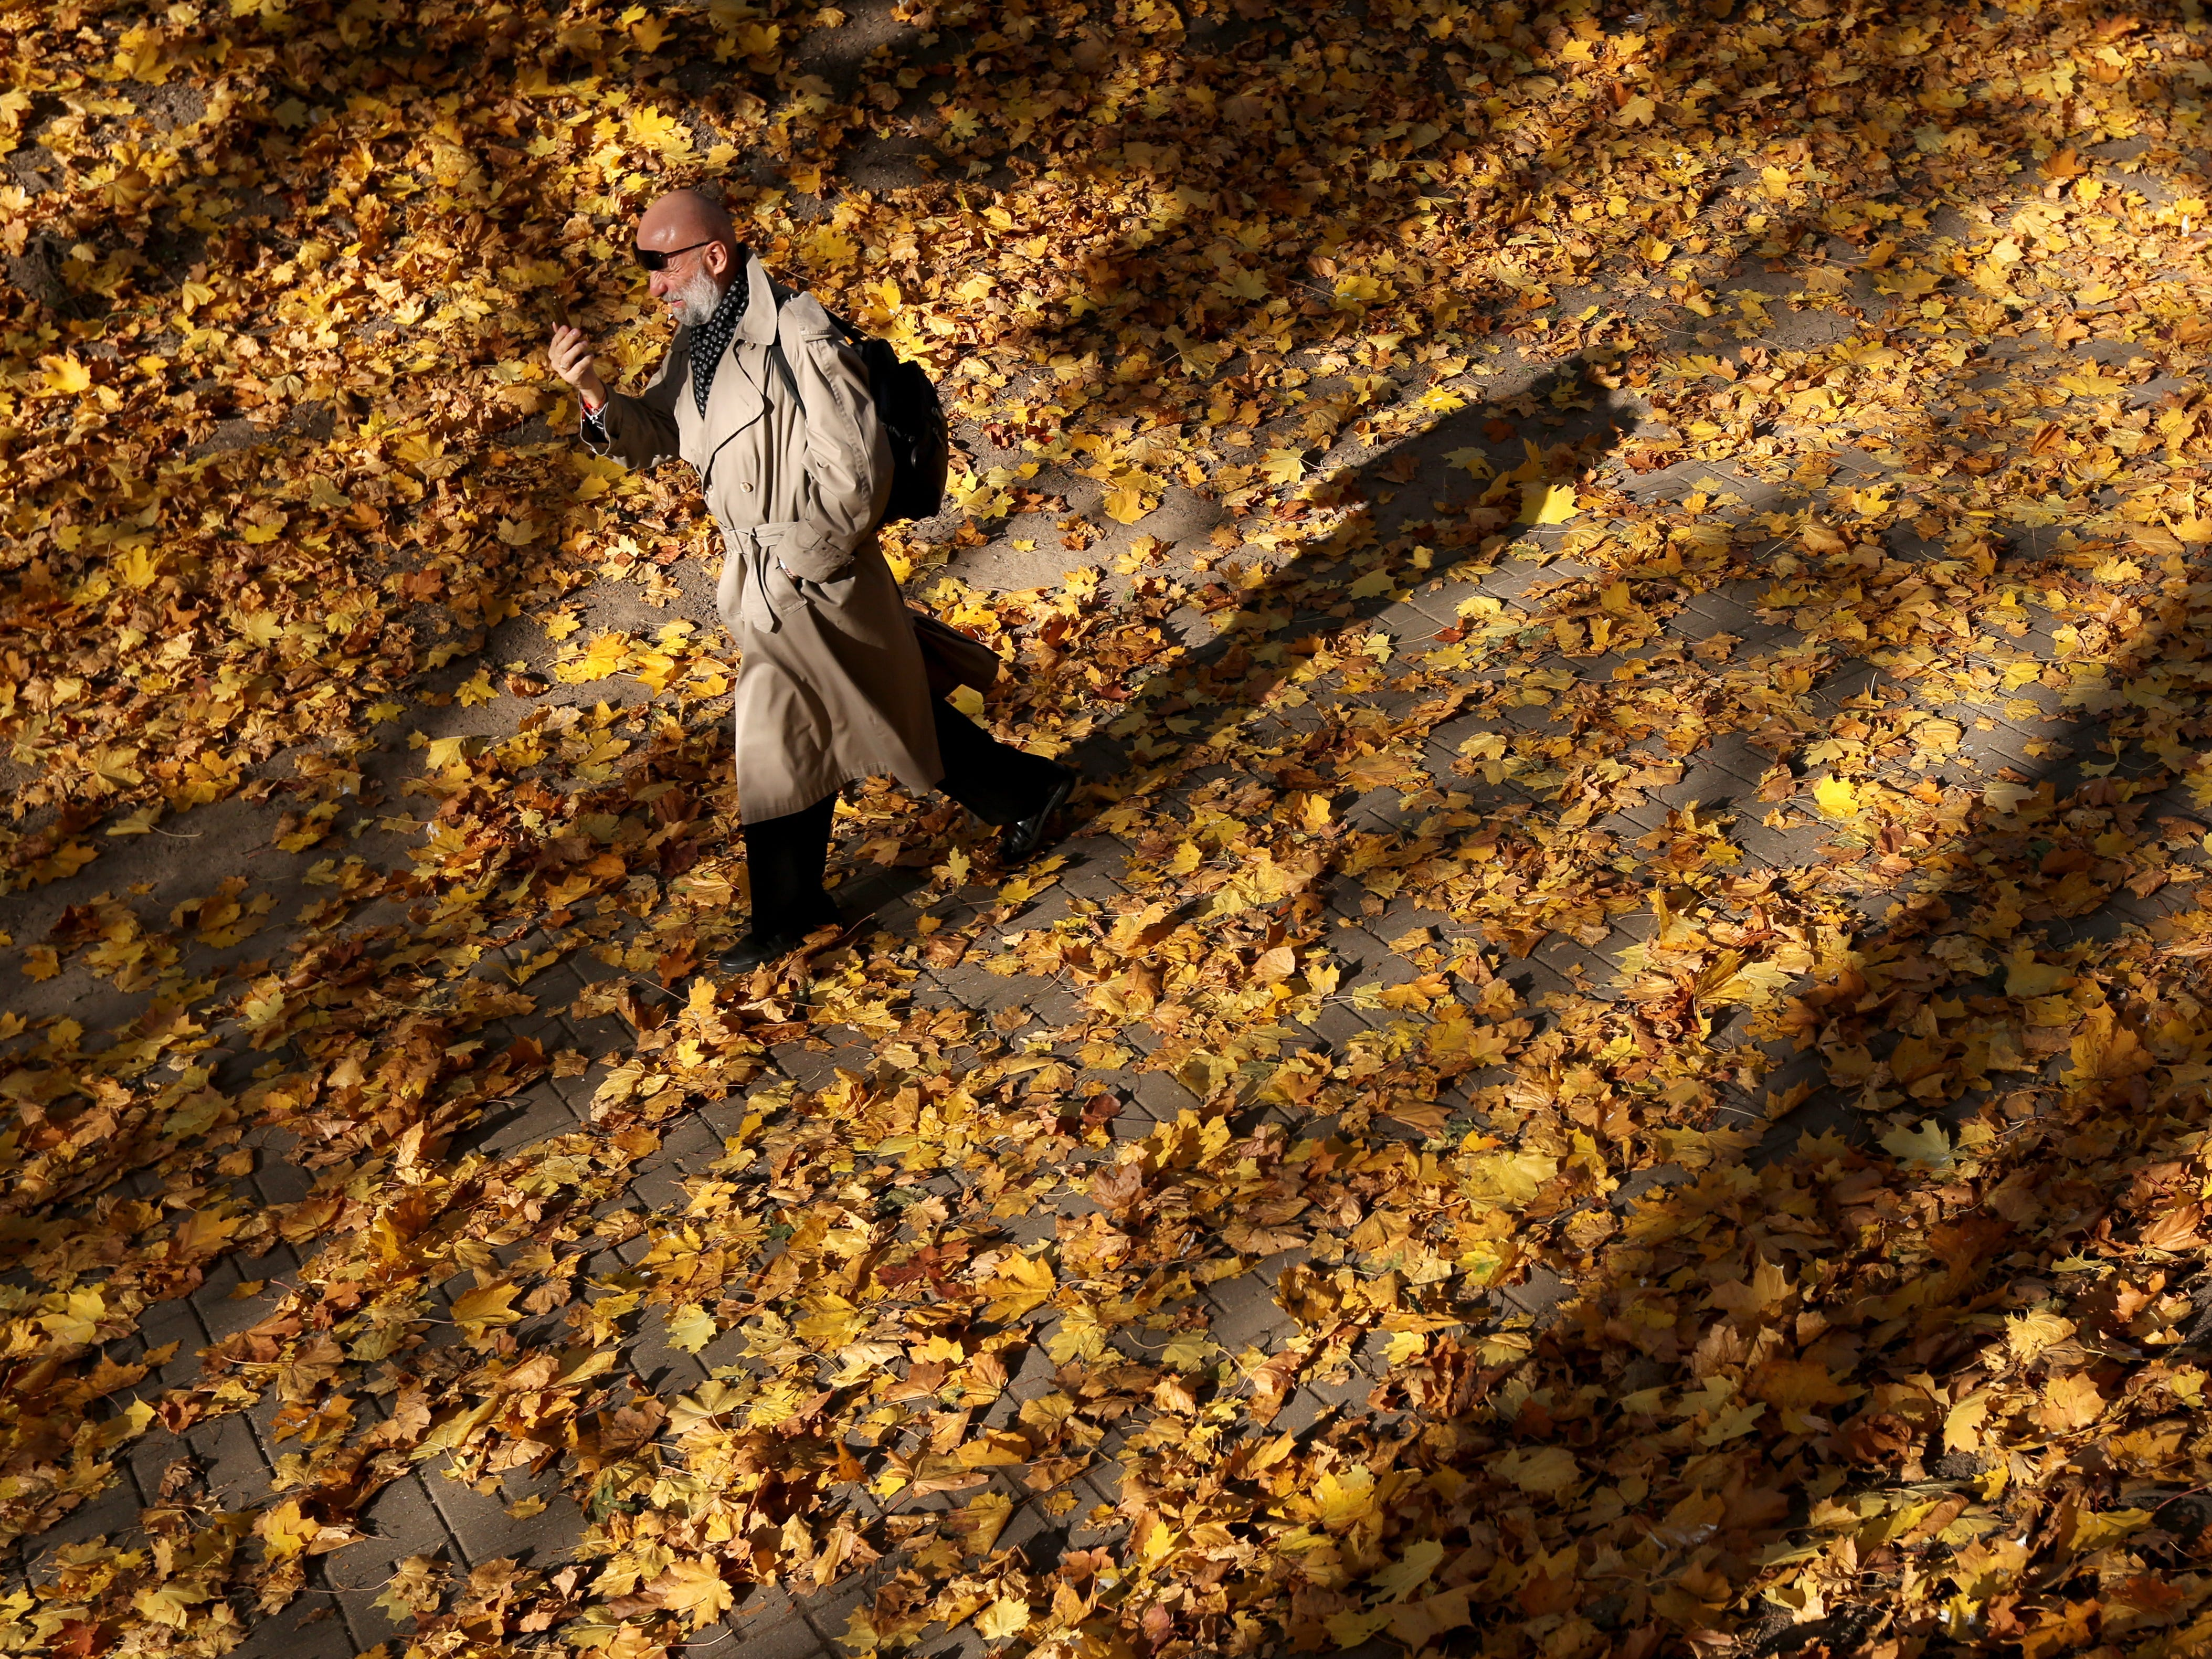 A man walks on seasonal leaves in a central park on a sunny day in Minsk, Belarus on Oct. 18, 2017.